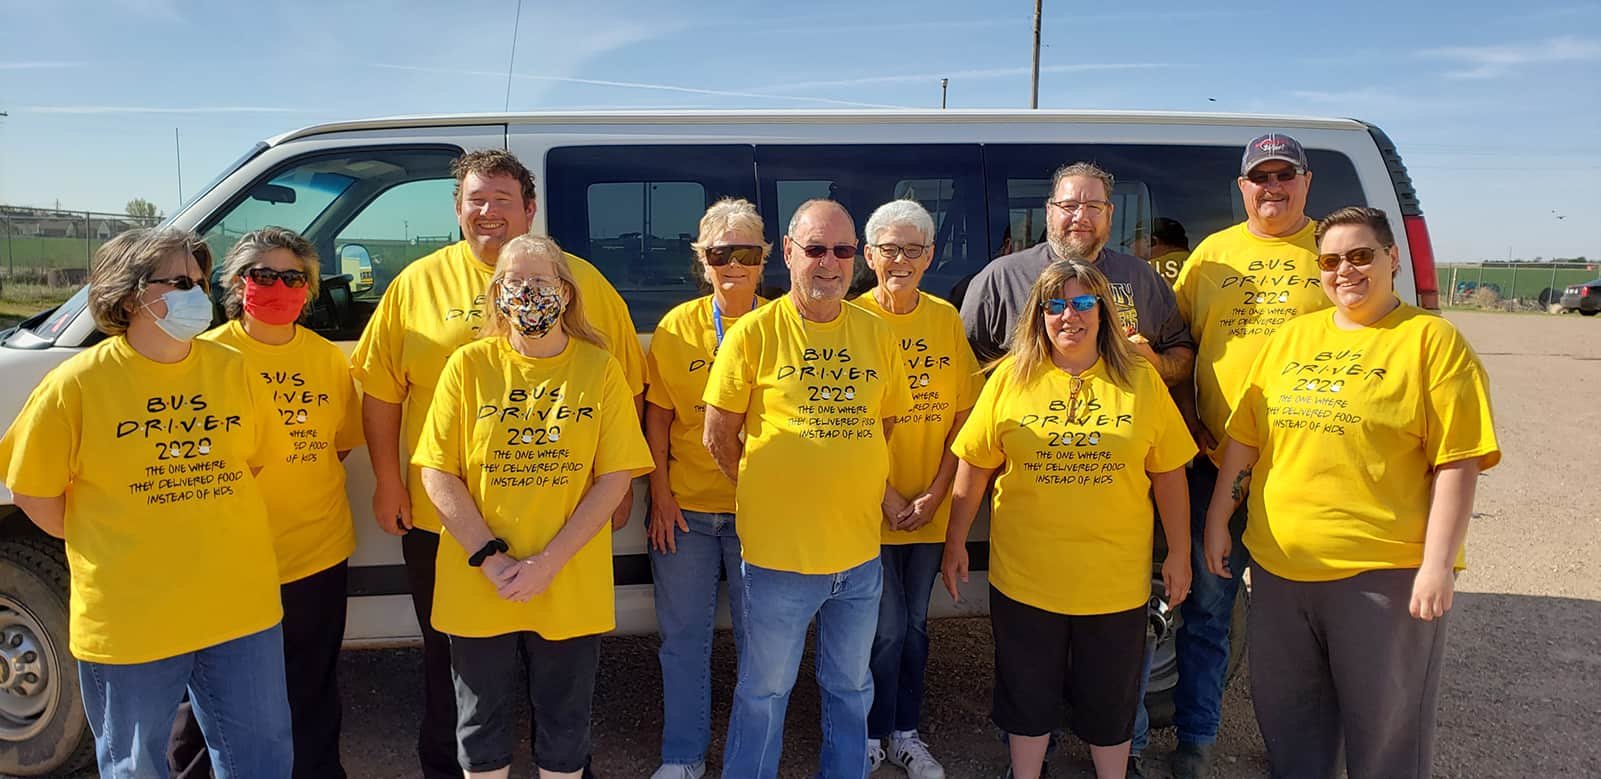 Bus drivers in front of a van wearing yellow shirts